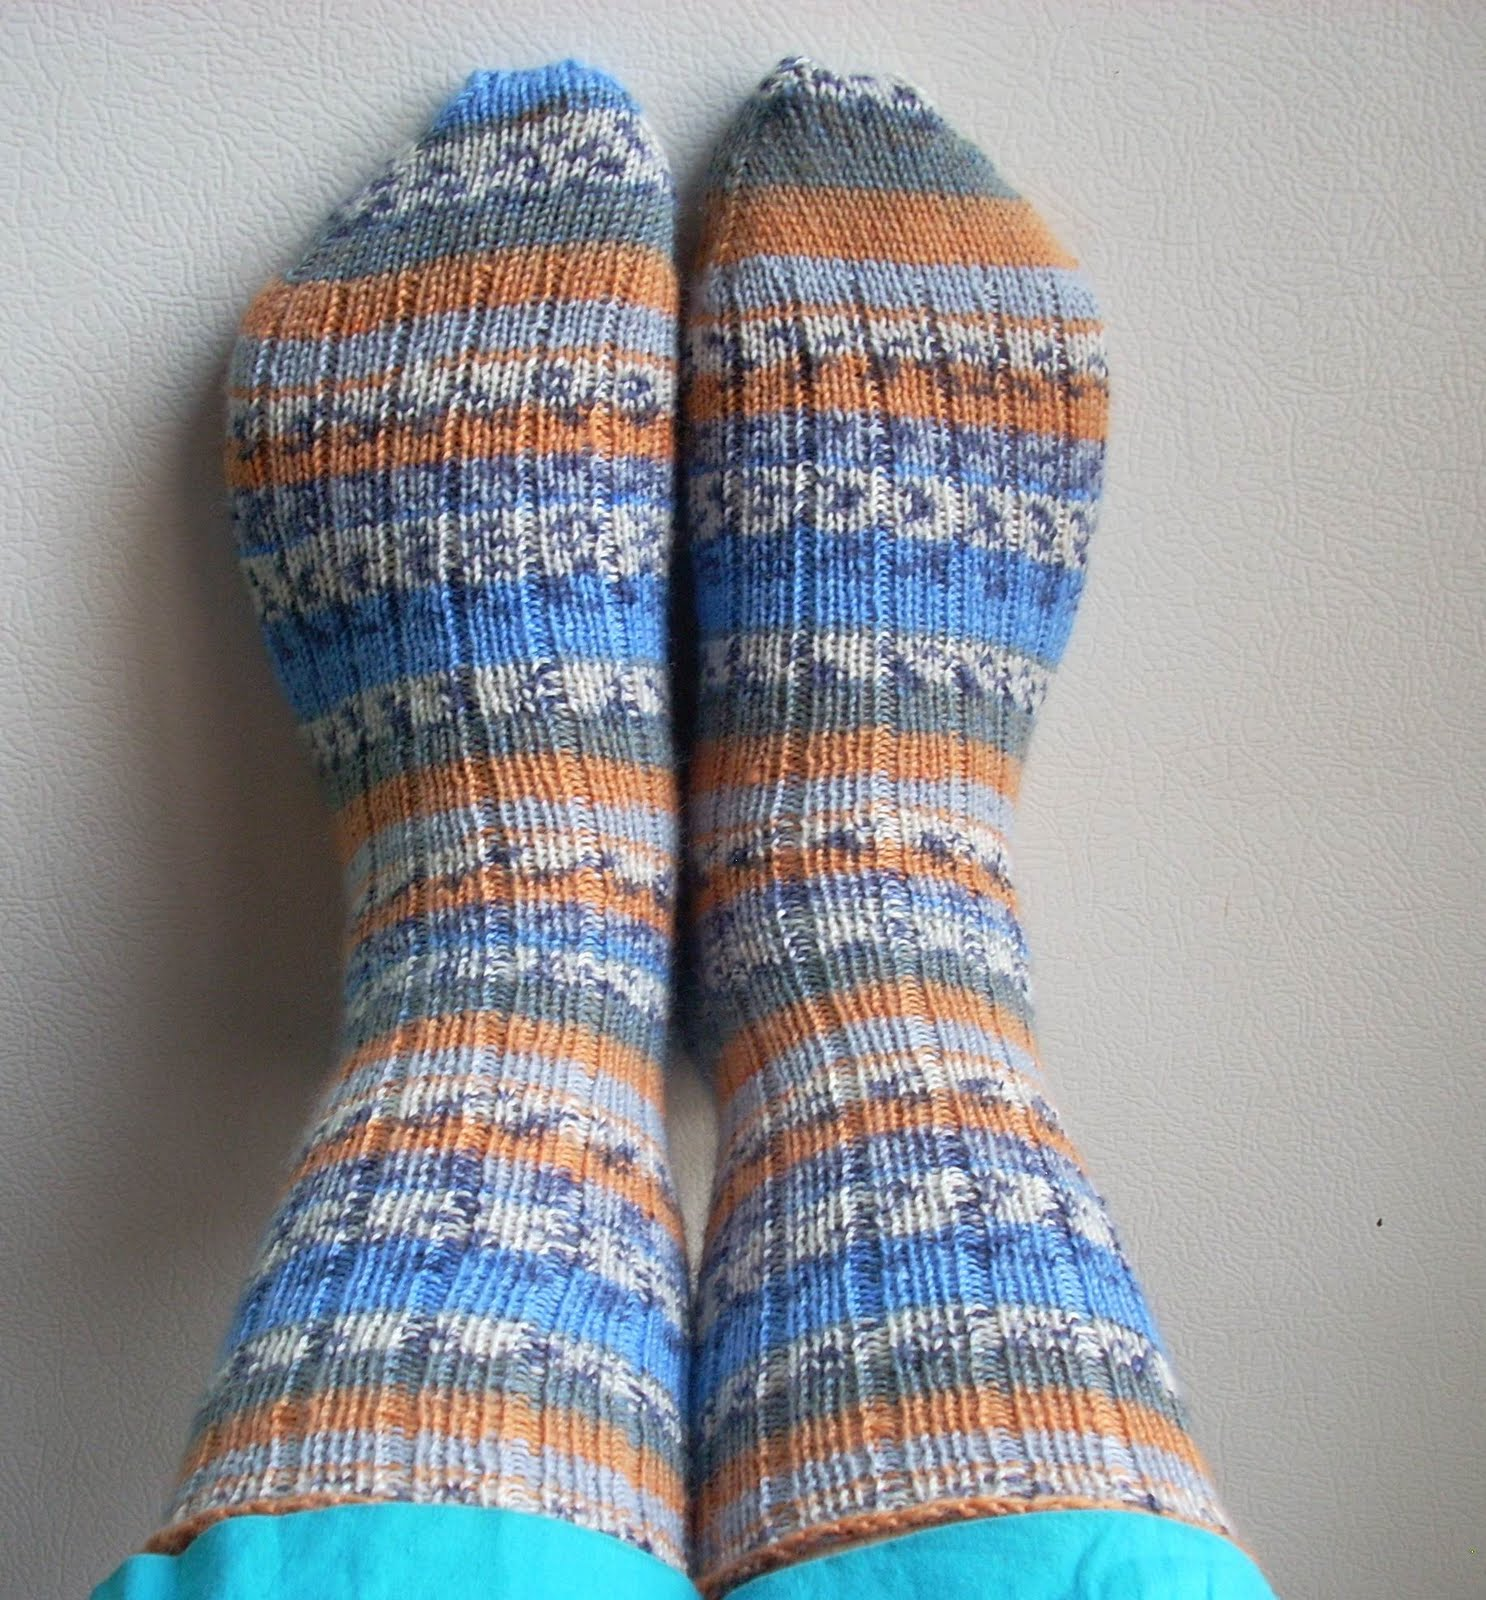 Knitting Pattern For Basic Socks : Umme Yusuf: Basic Ribbed Socks